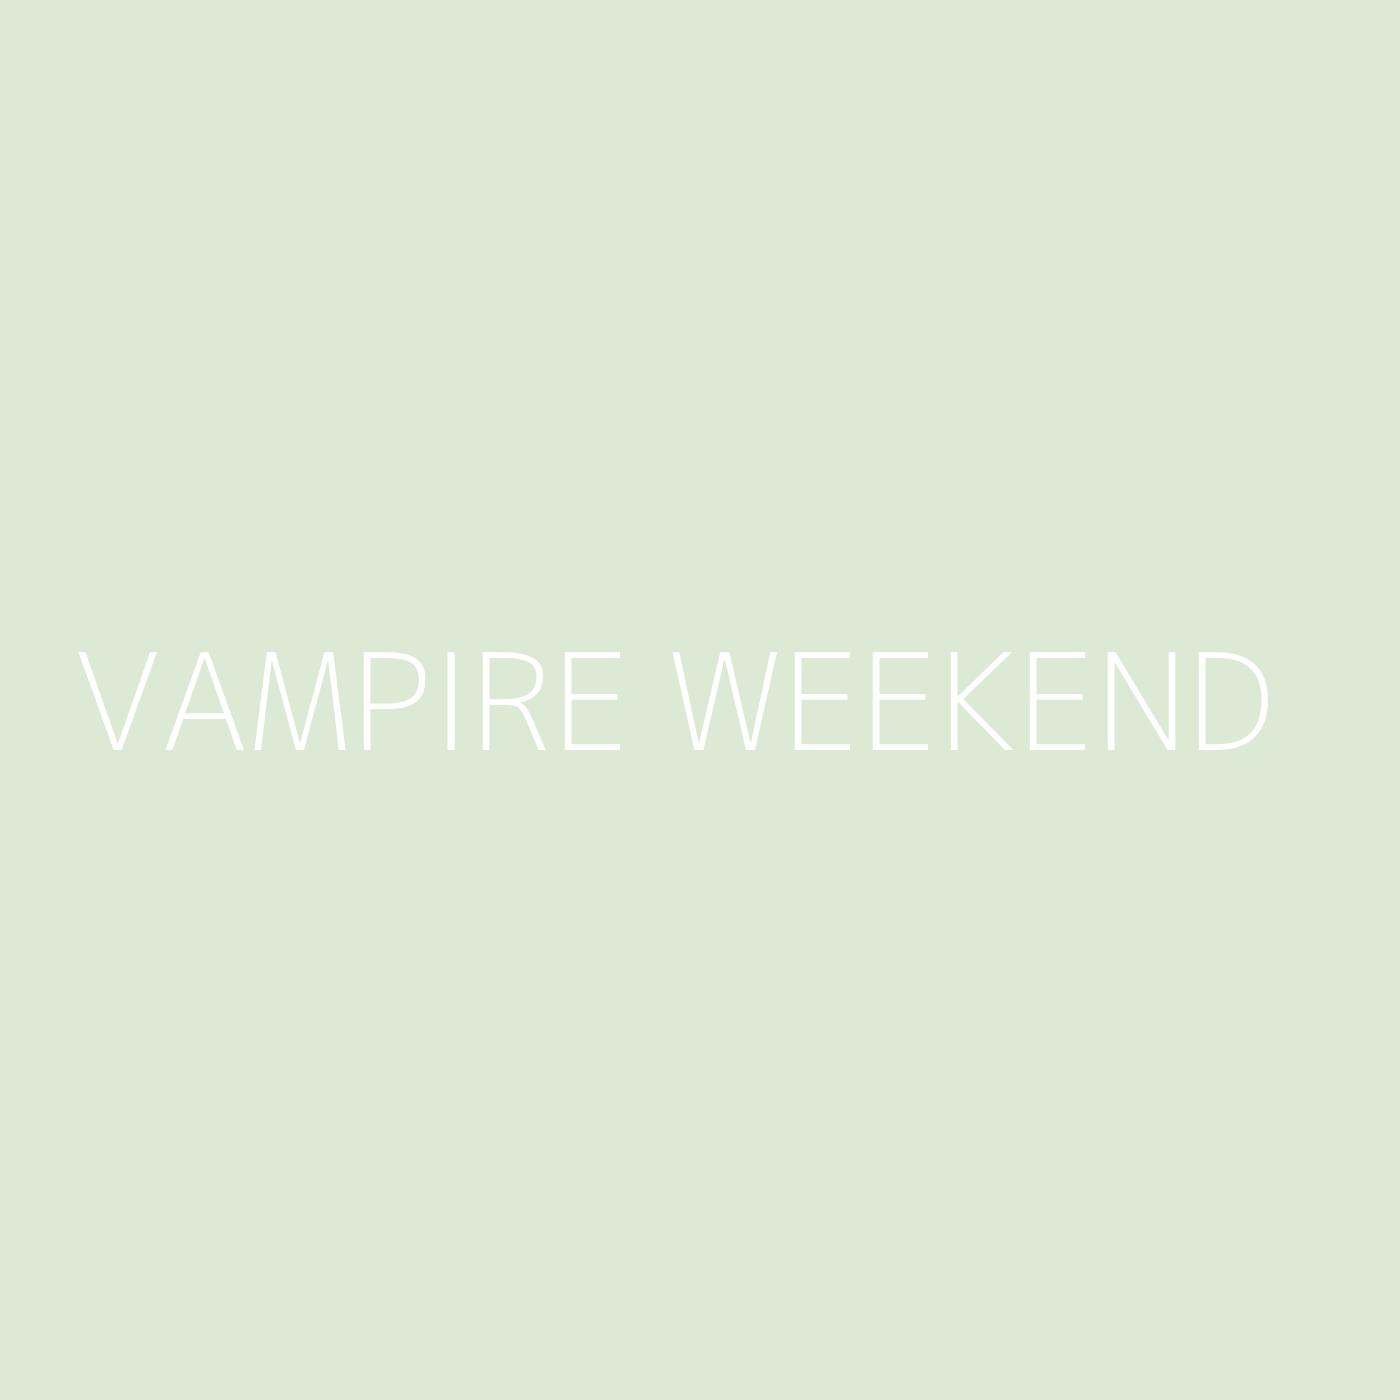 Vampire Weekend Playlist Artwork